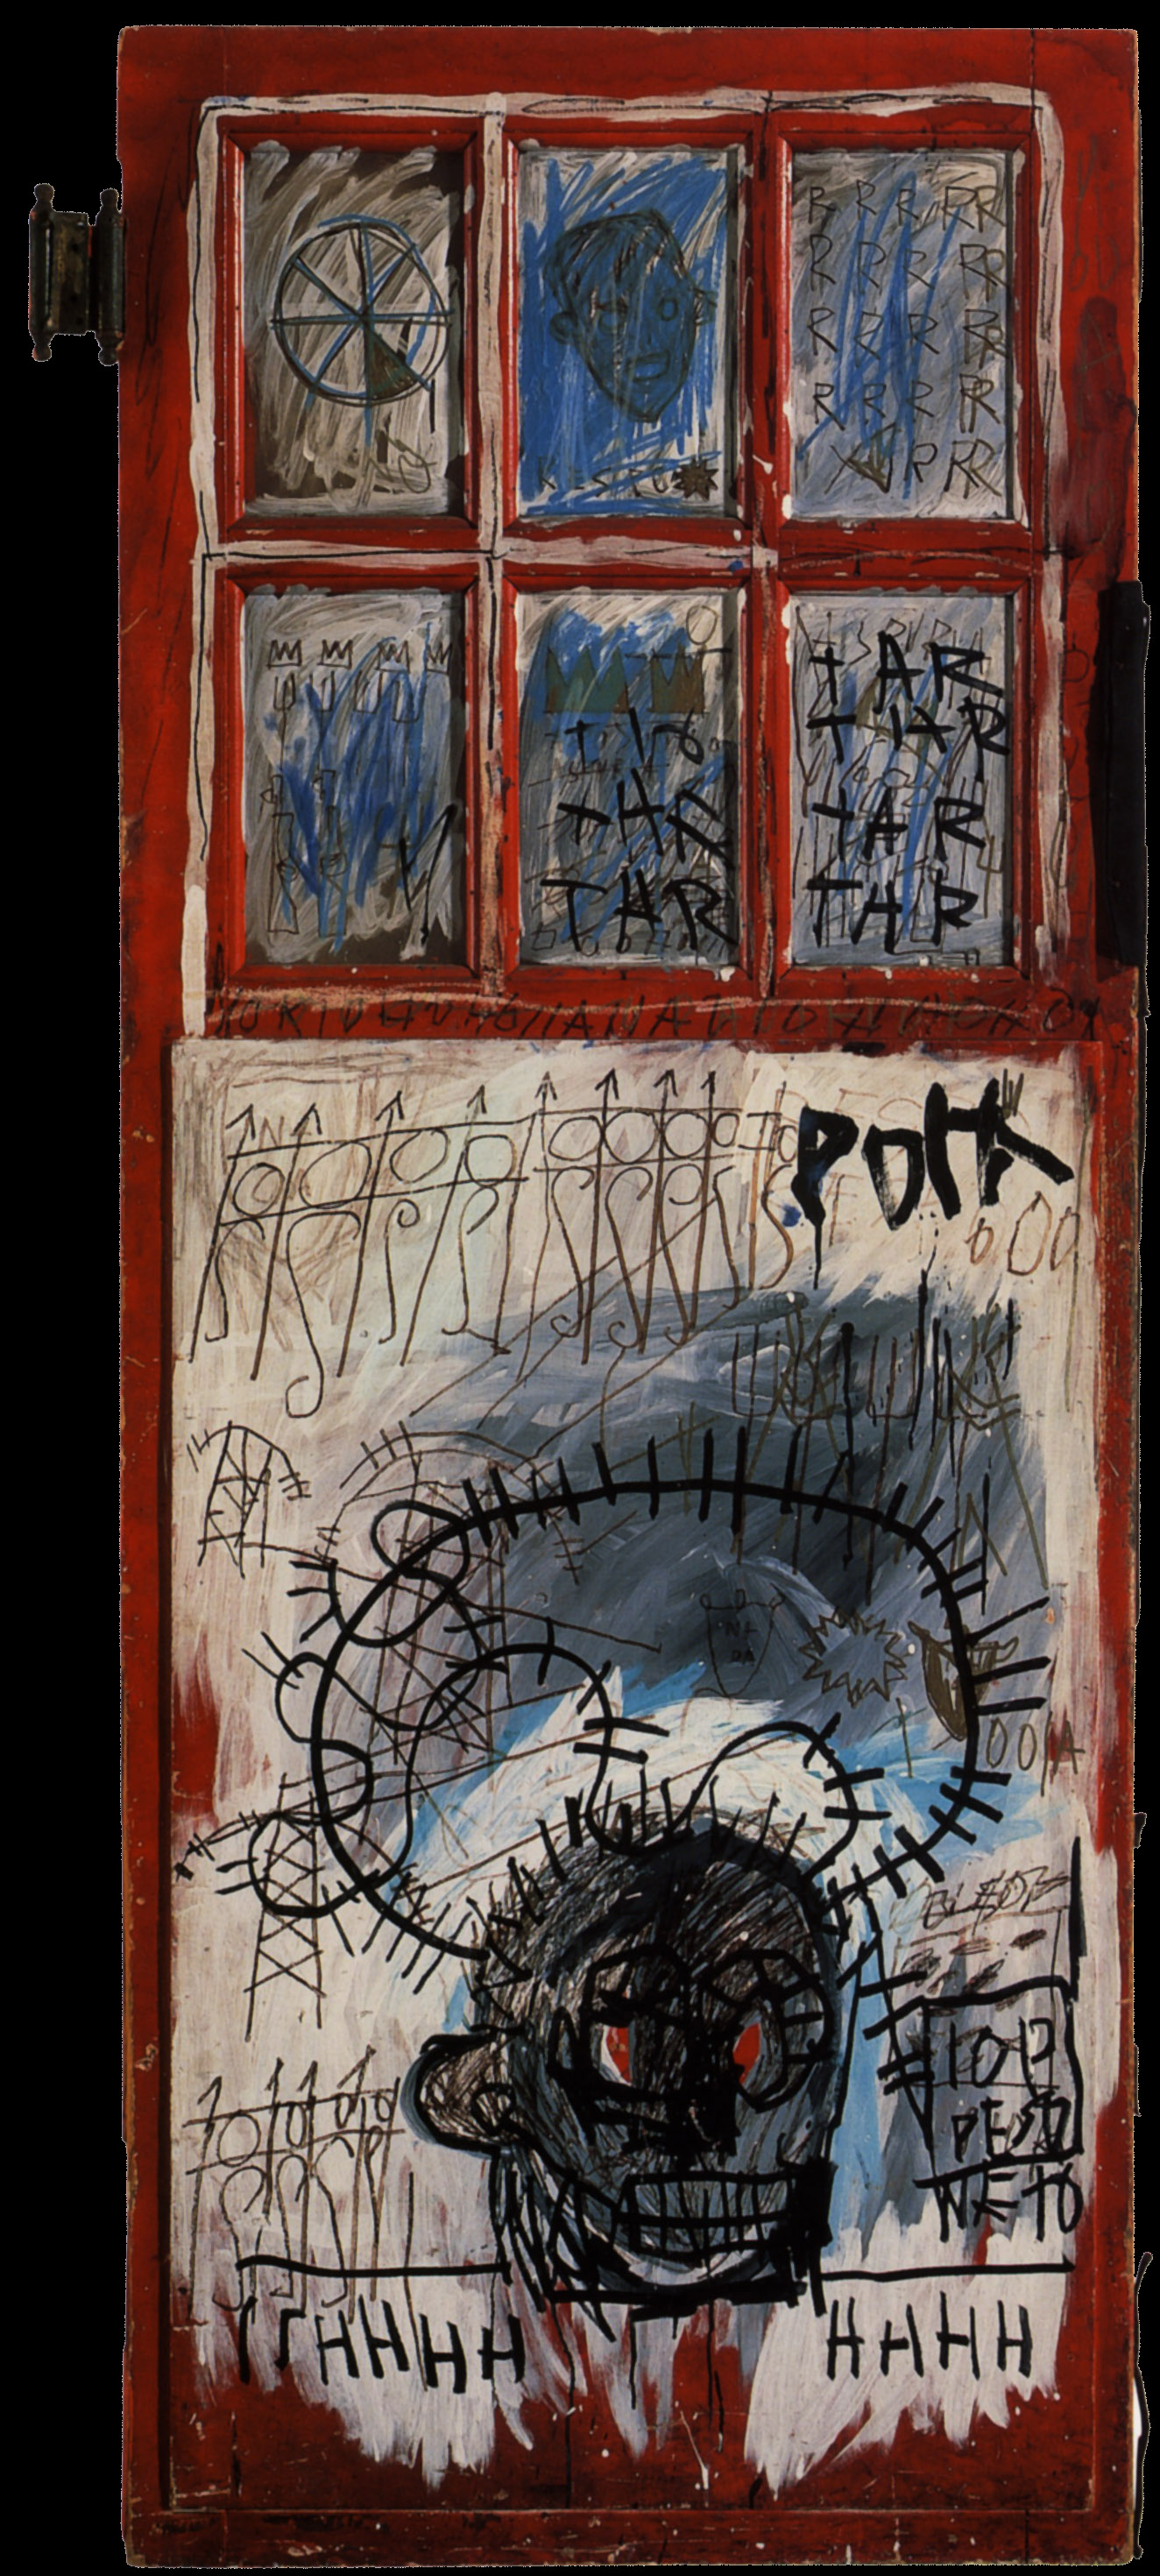 Jean-Michel Basquiat, Pork